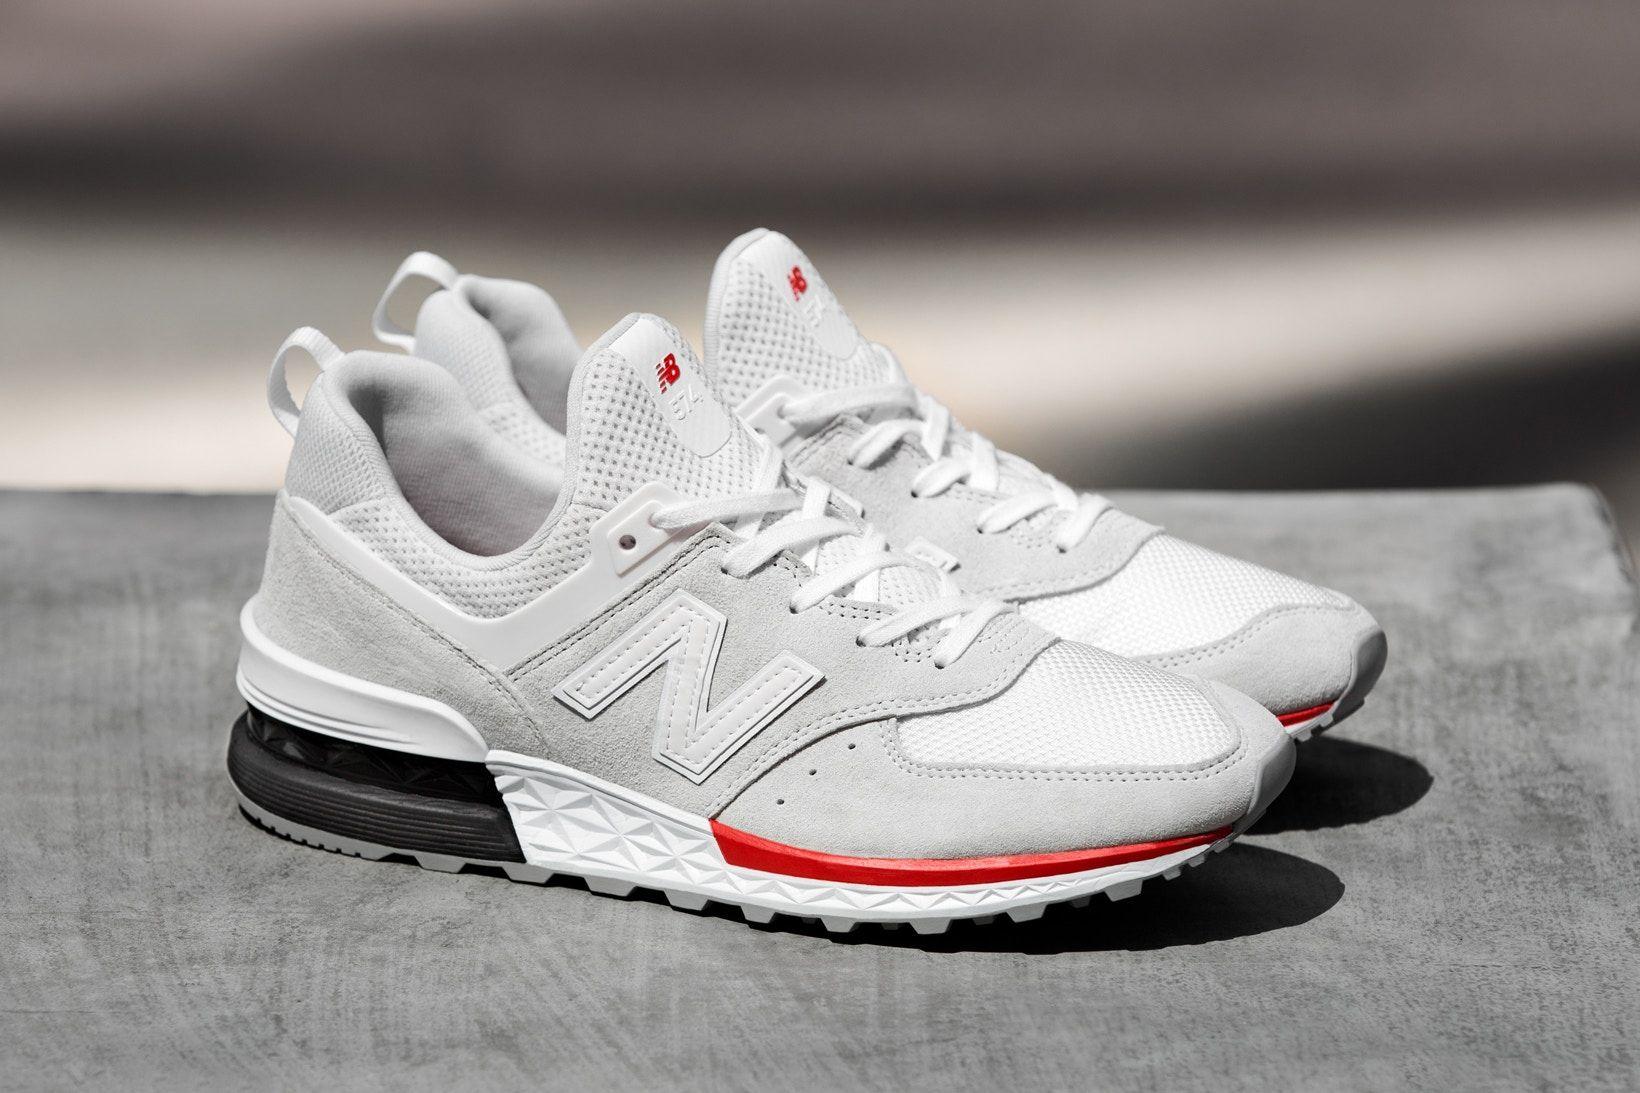 New Balance Officially Unveils Its New 574 Sport Model ...